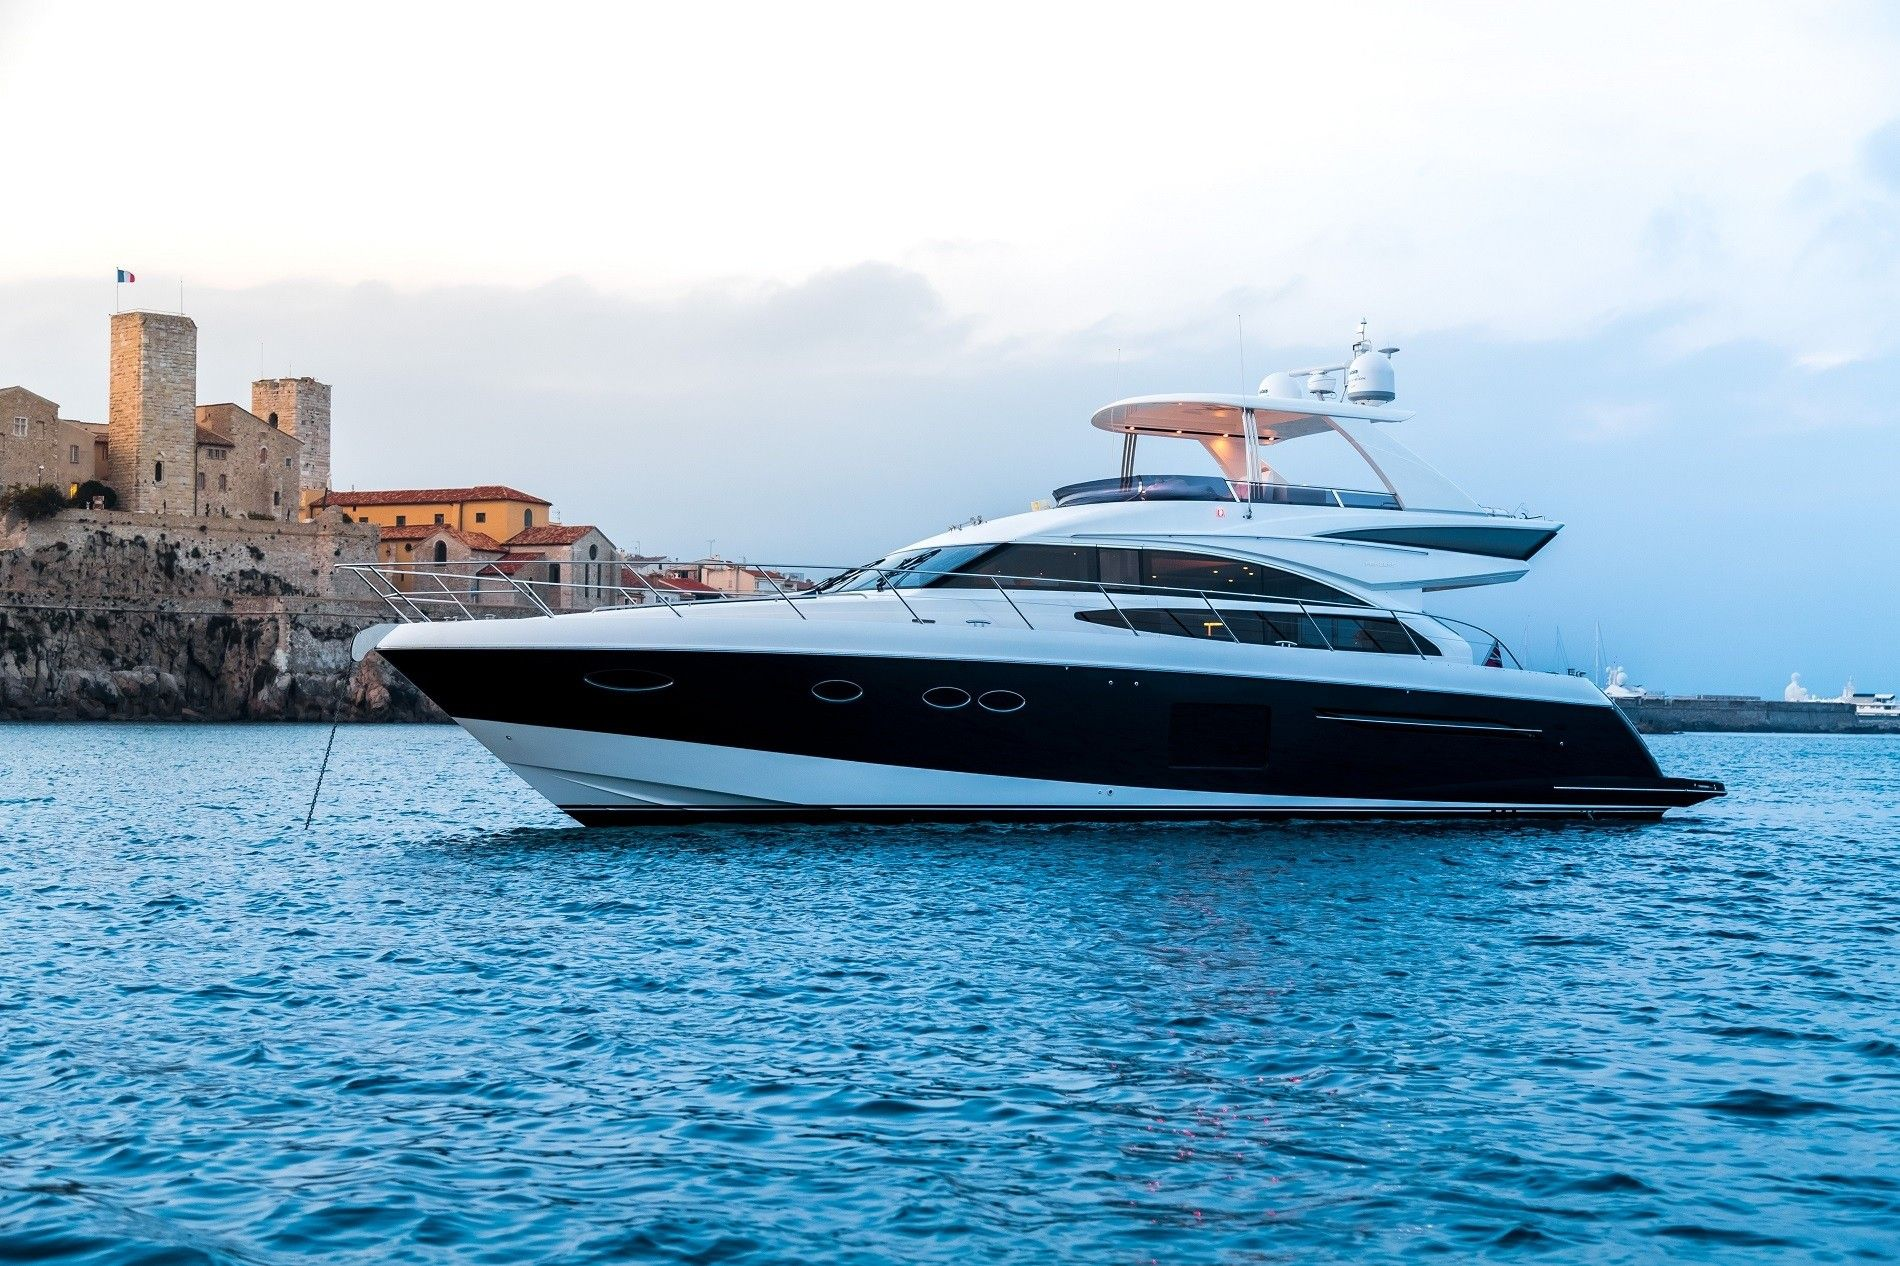 Princess 64 Fly - Day Charter Yacht - Cannes - Antibes - St Tropez - Monaco